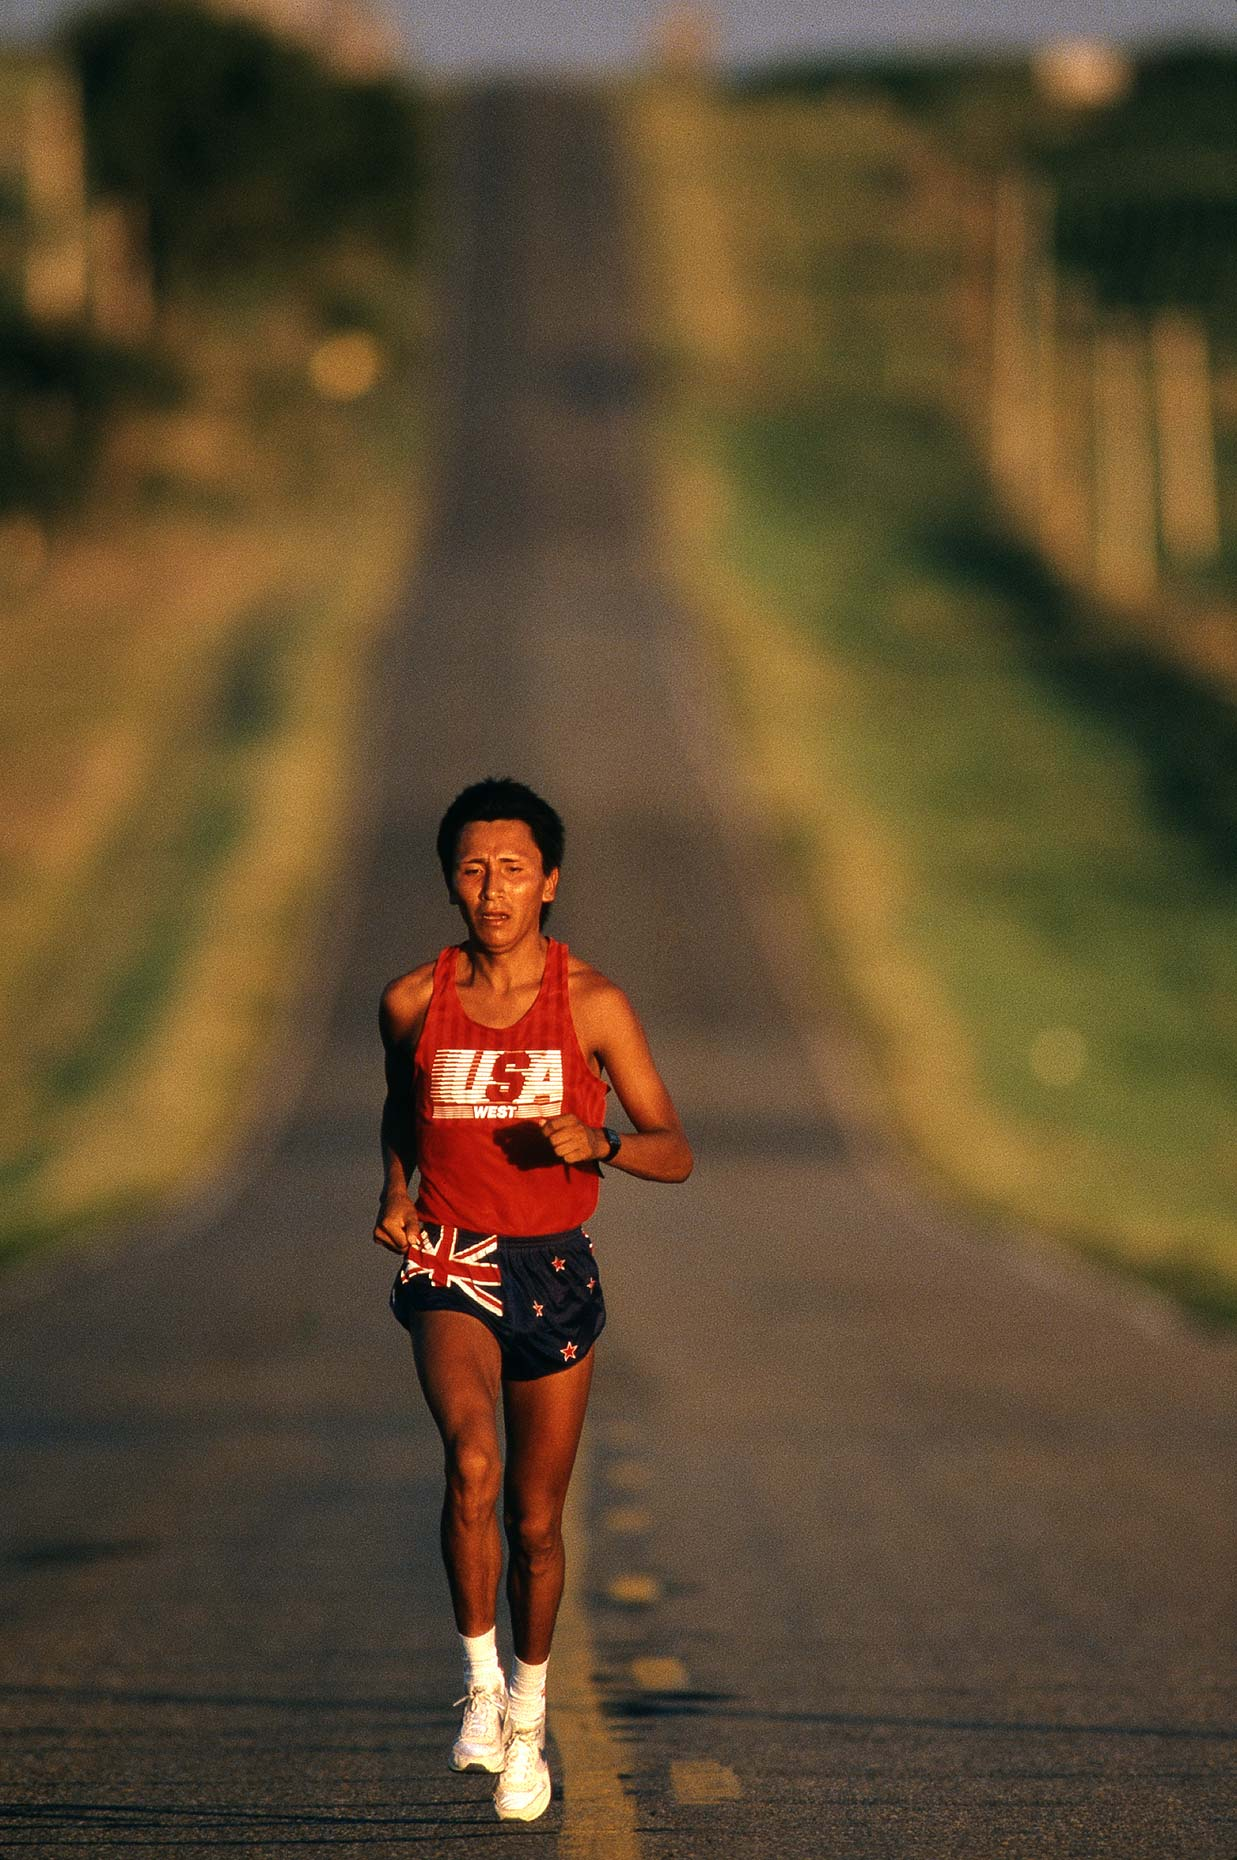 A native American runner trains on a road on the Rosebud Indian Reservation.